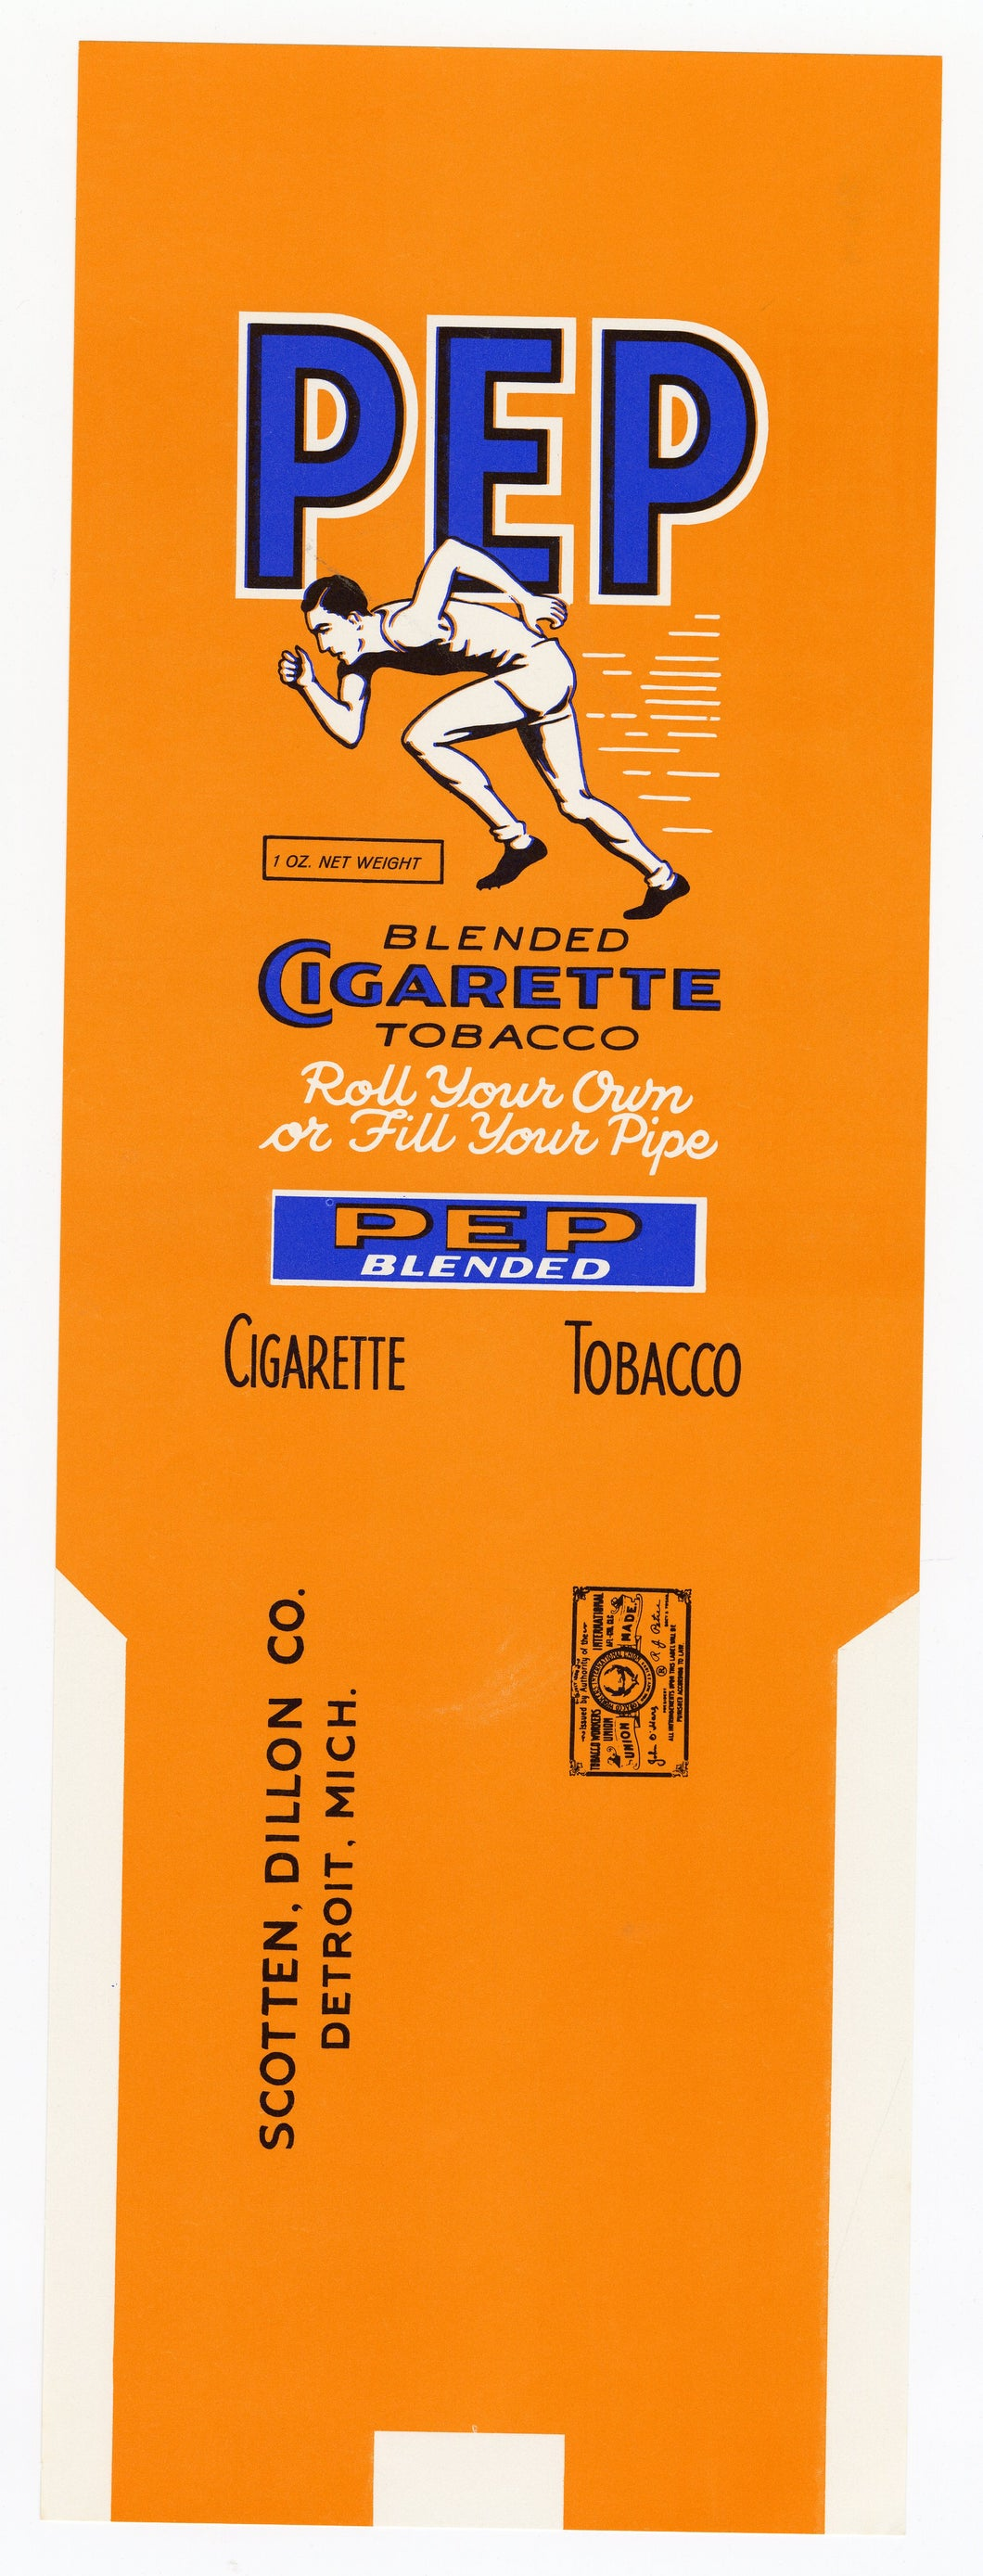 Vintage, Unused PEP Brand Cigarette Tobacco Label, Athlete, Runner || Detroit, Mich.